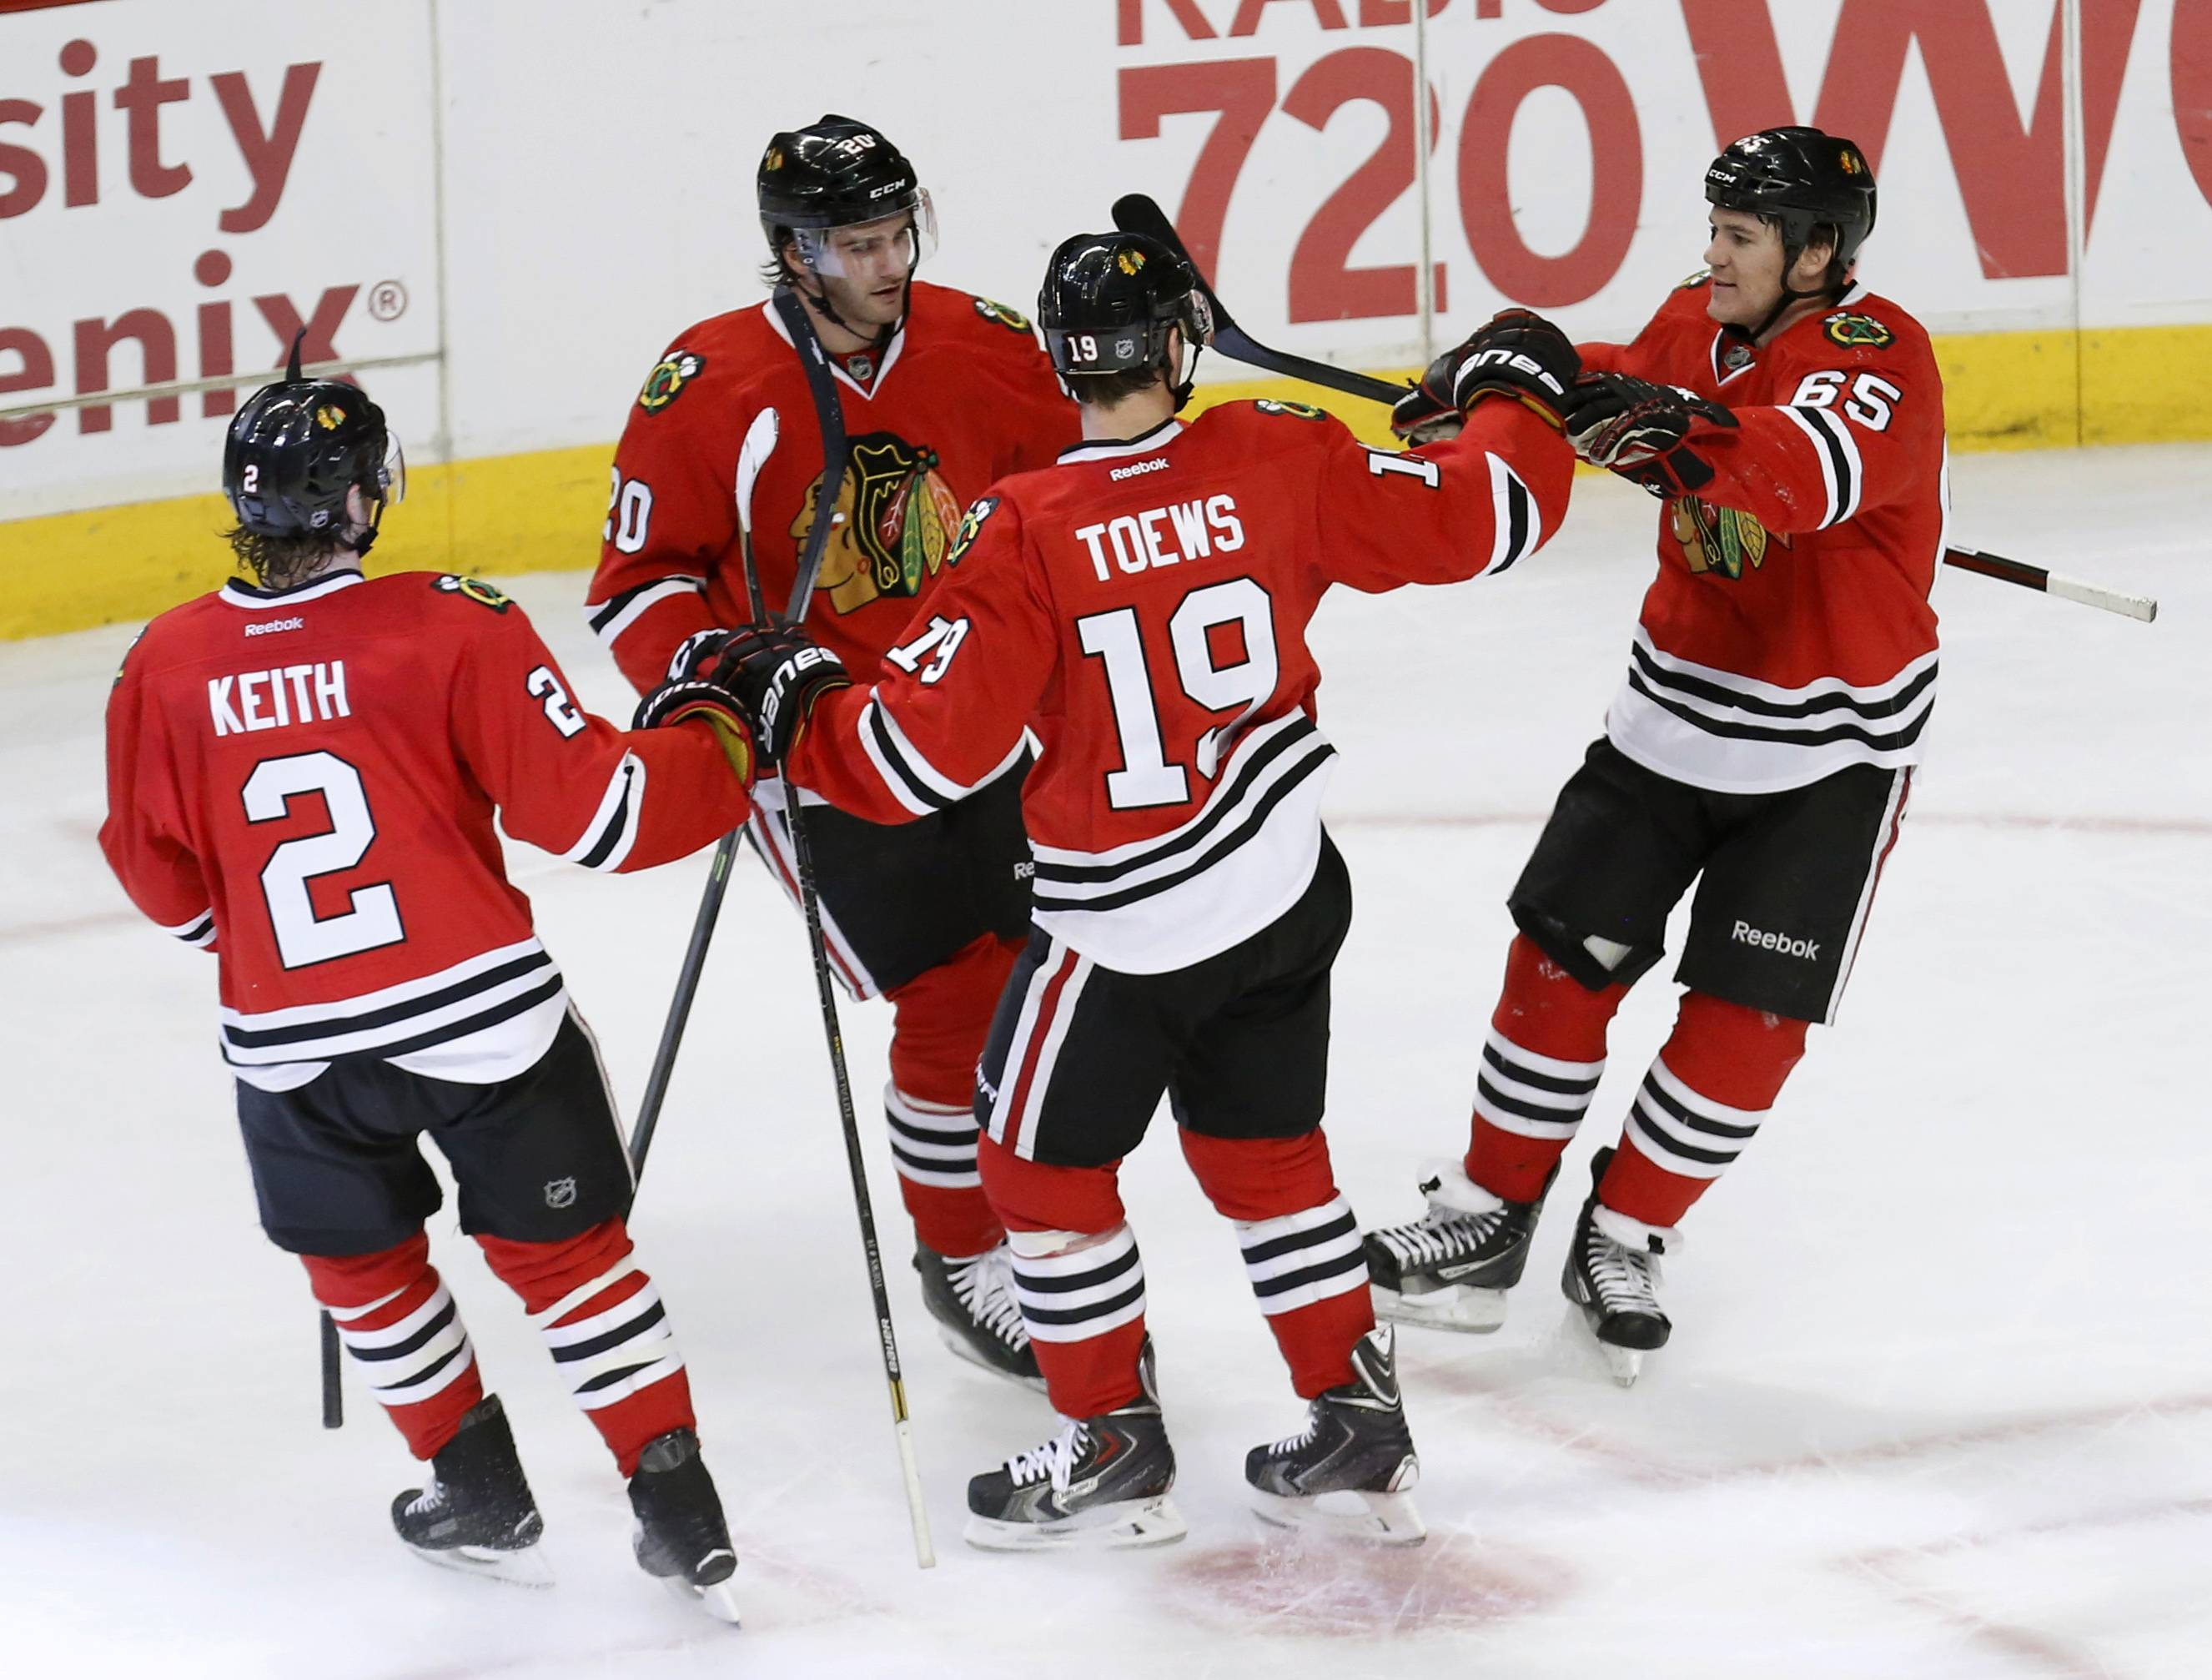 Andrew Shaw, far right, celebrates his goal with teammates Duncan Keith, Brandon Saad and Jonathan Toews. Shaw and Toews each had 2 goals in the Hawks' rout of the Blue Jackets.